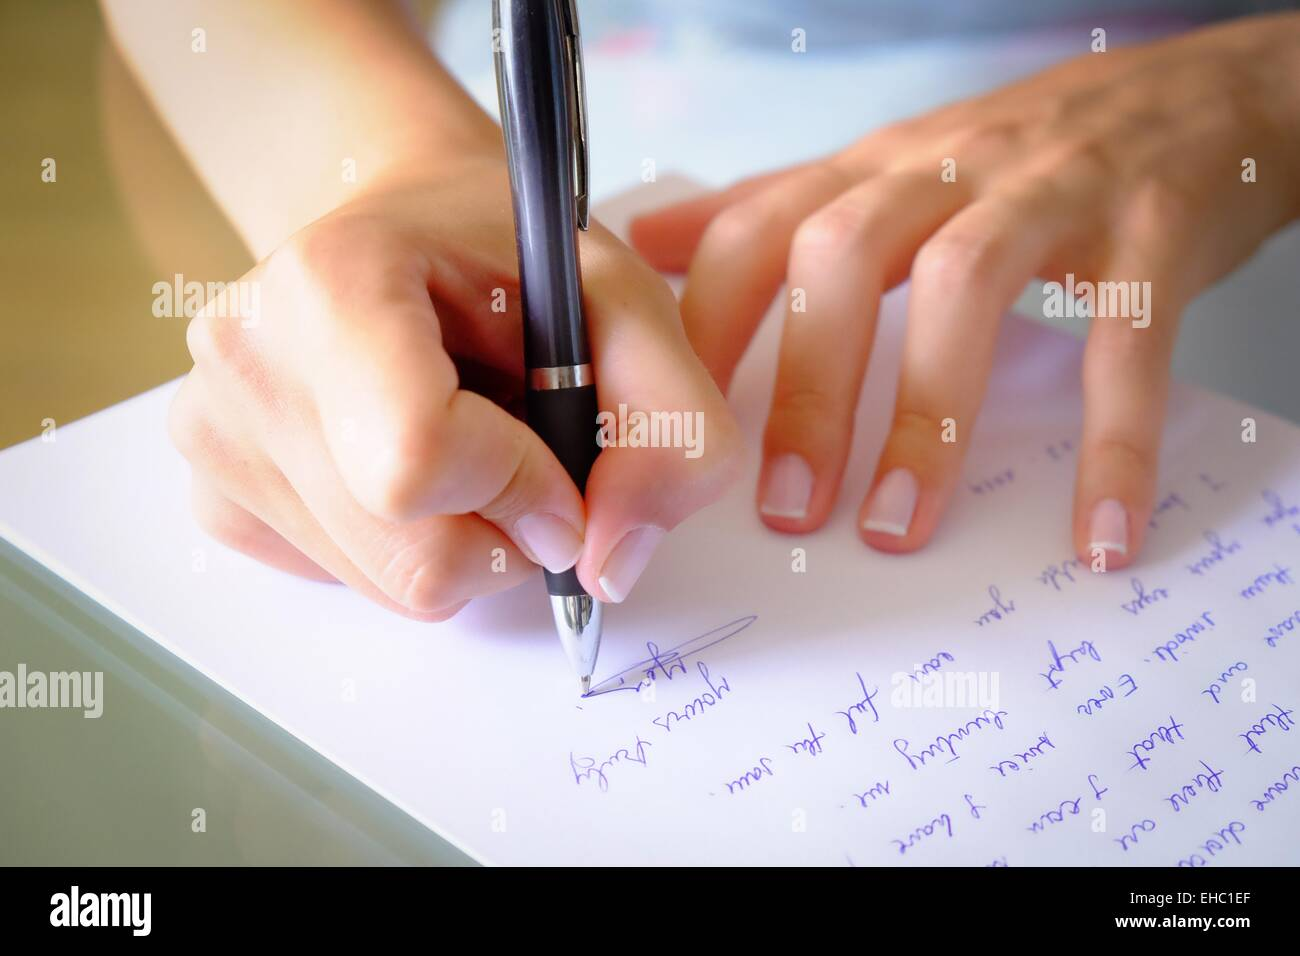 Writing a letter.girl writing a letter with a black pen - Stock Image